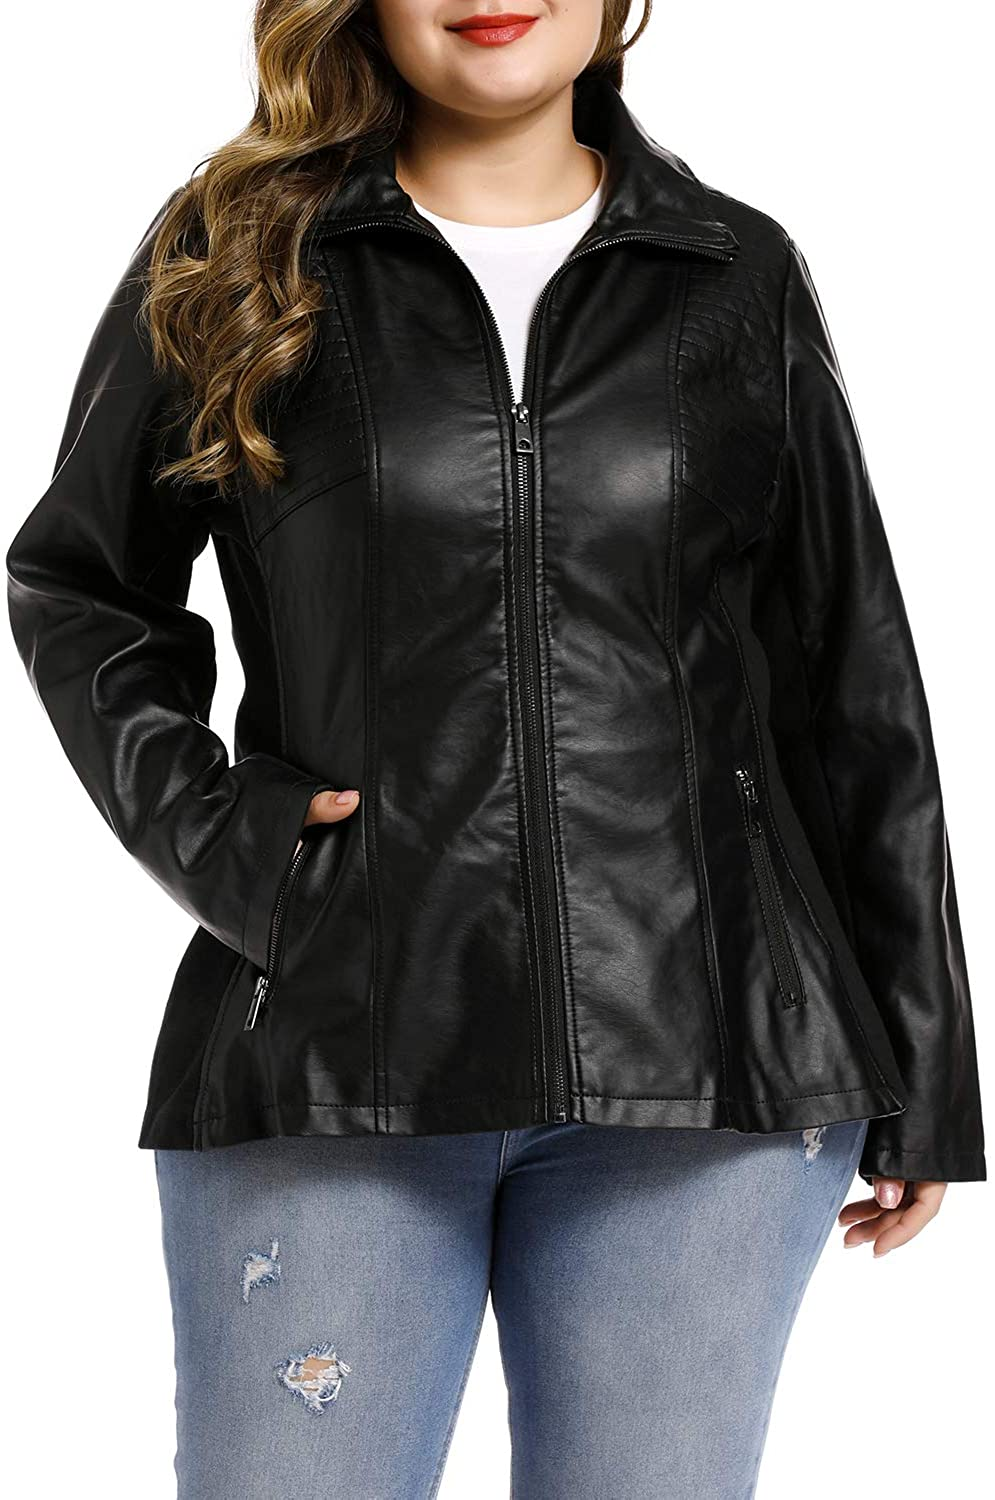 S P Y M Women's Faux Leather Fashion Quilted Moto Biker Jacket Plus size and Regular Size